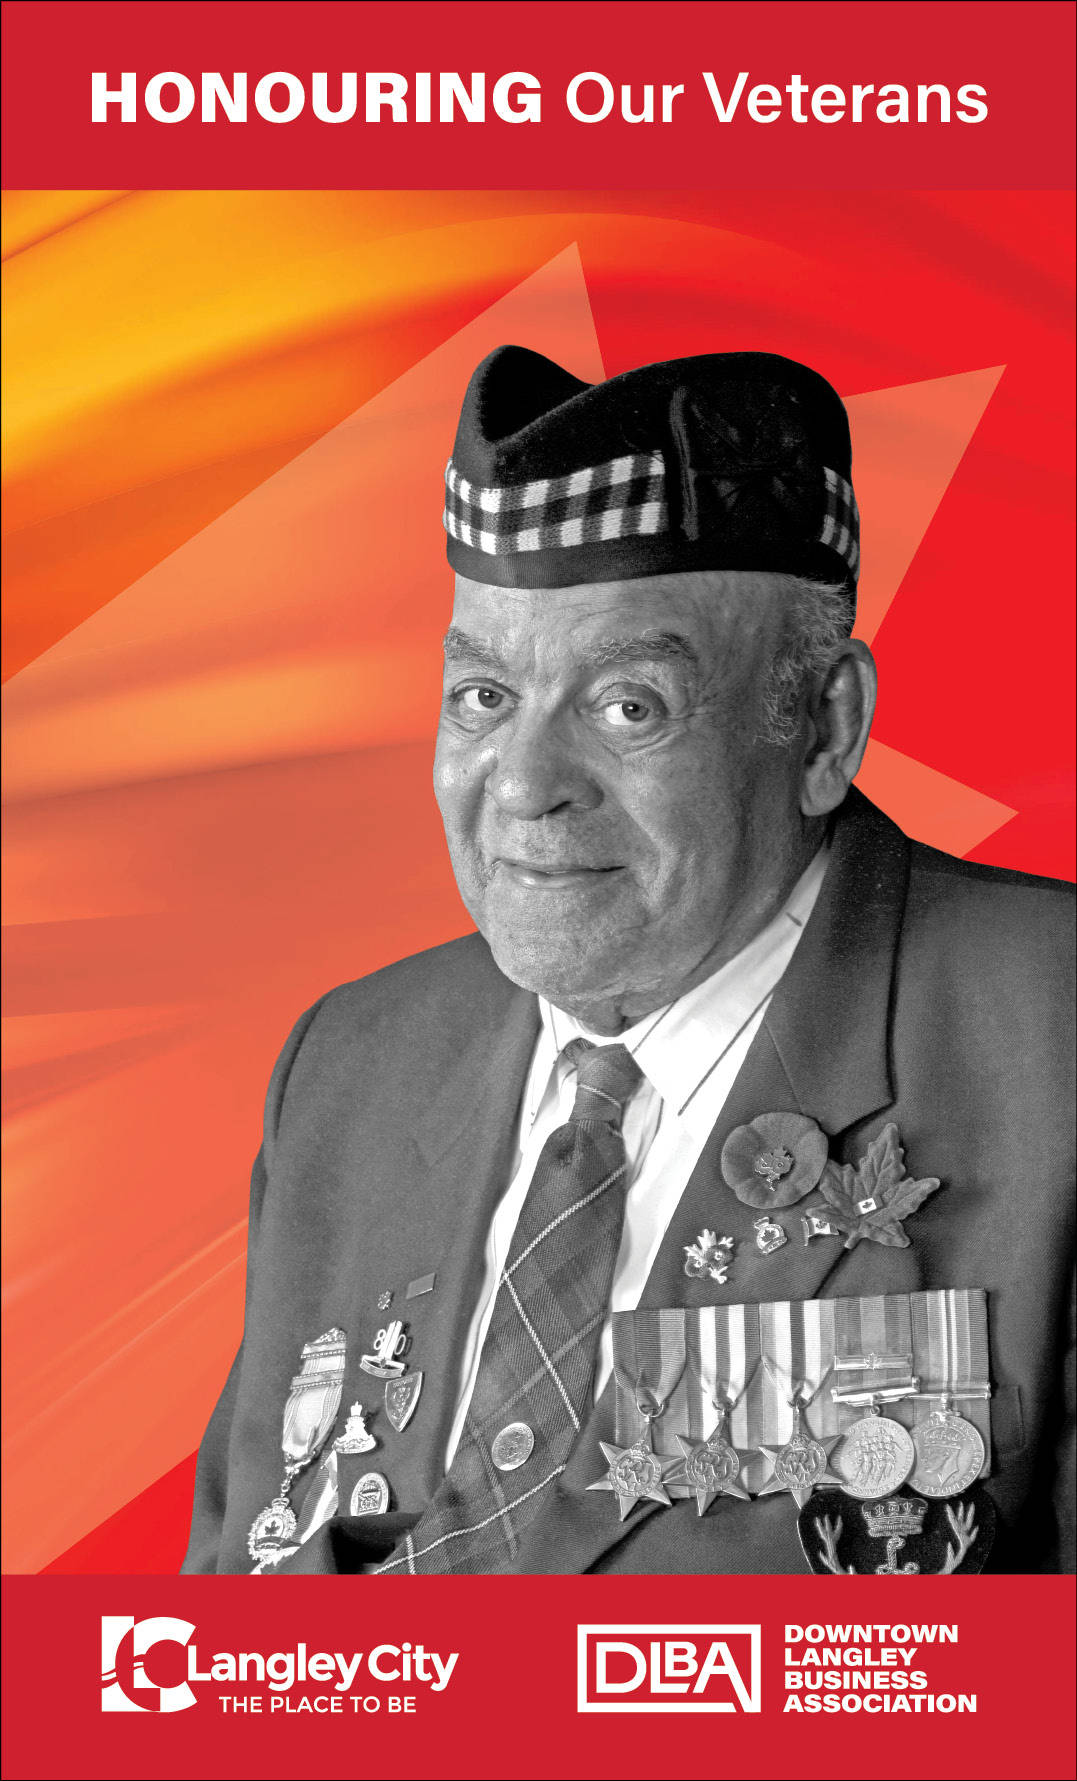 Phil Peterson, veteran featured on Downtown Langley Business Association Remembrance Day banner. (Downtown Langley Business Association/Special to Langley Advance Times)